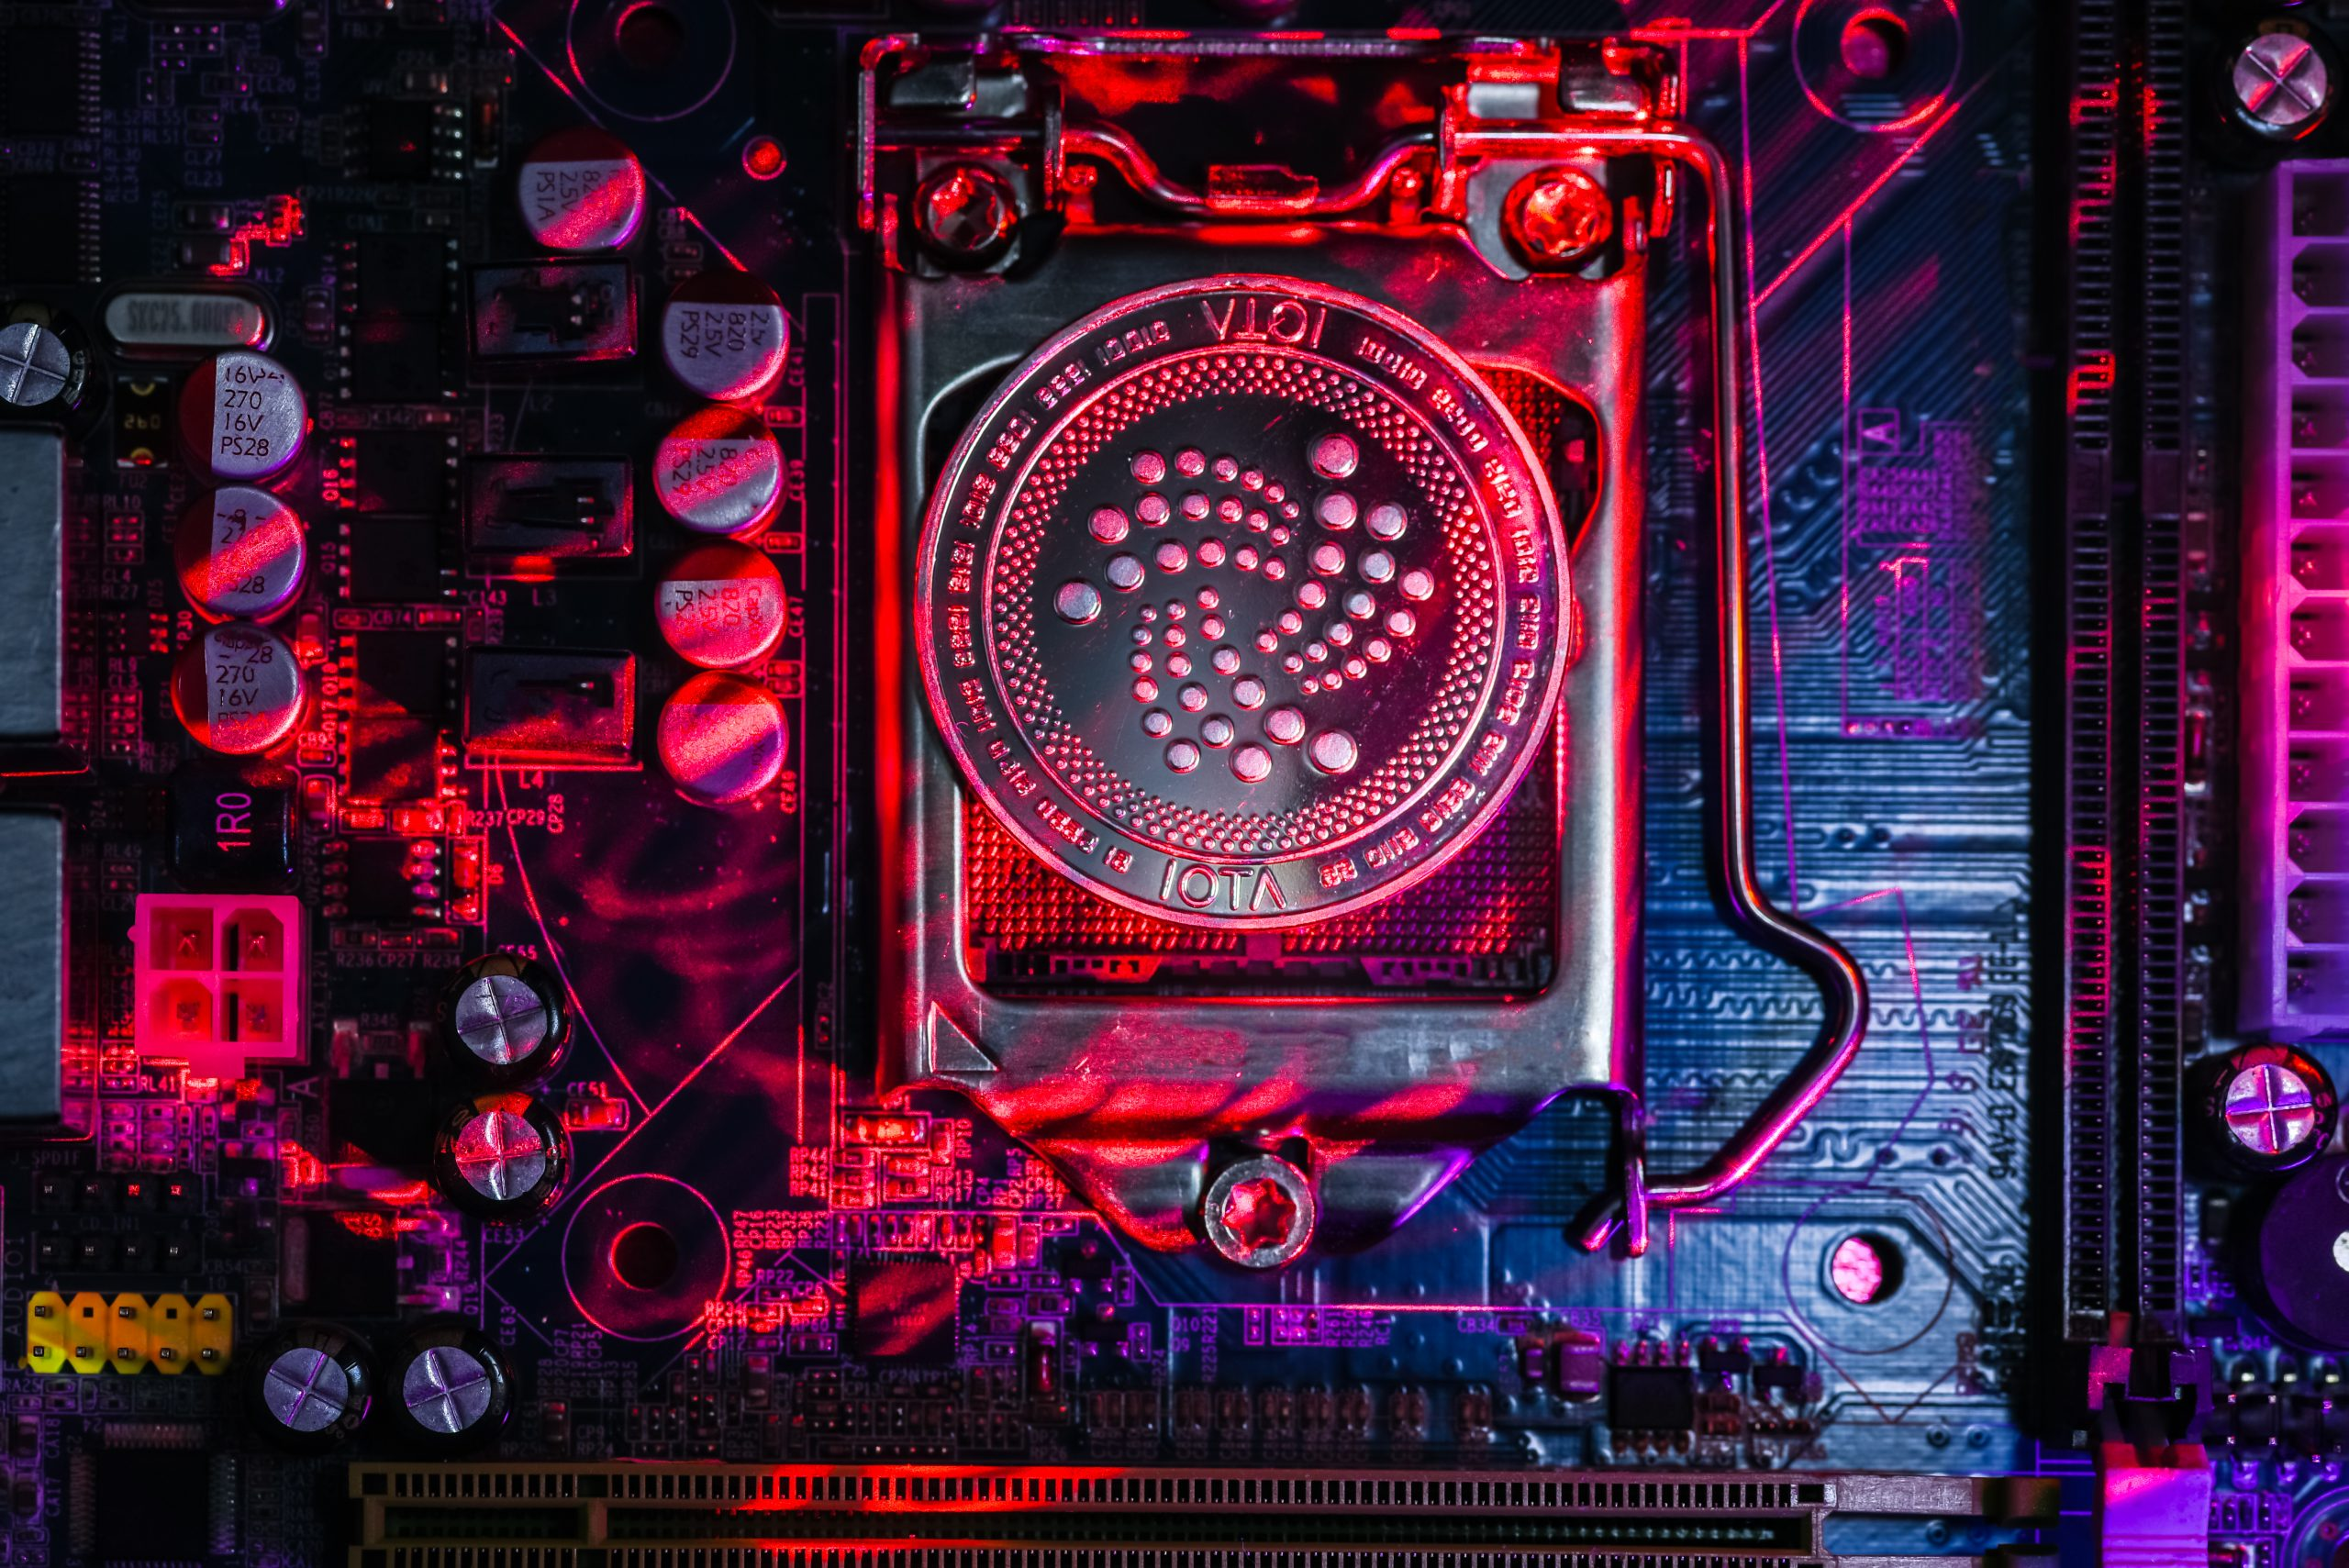 IOTA Chrysalis has the seal of approval from more than a dozen firms